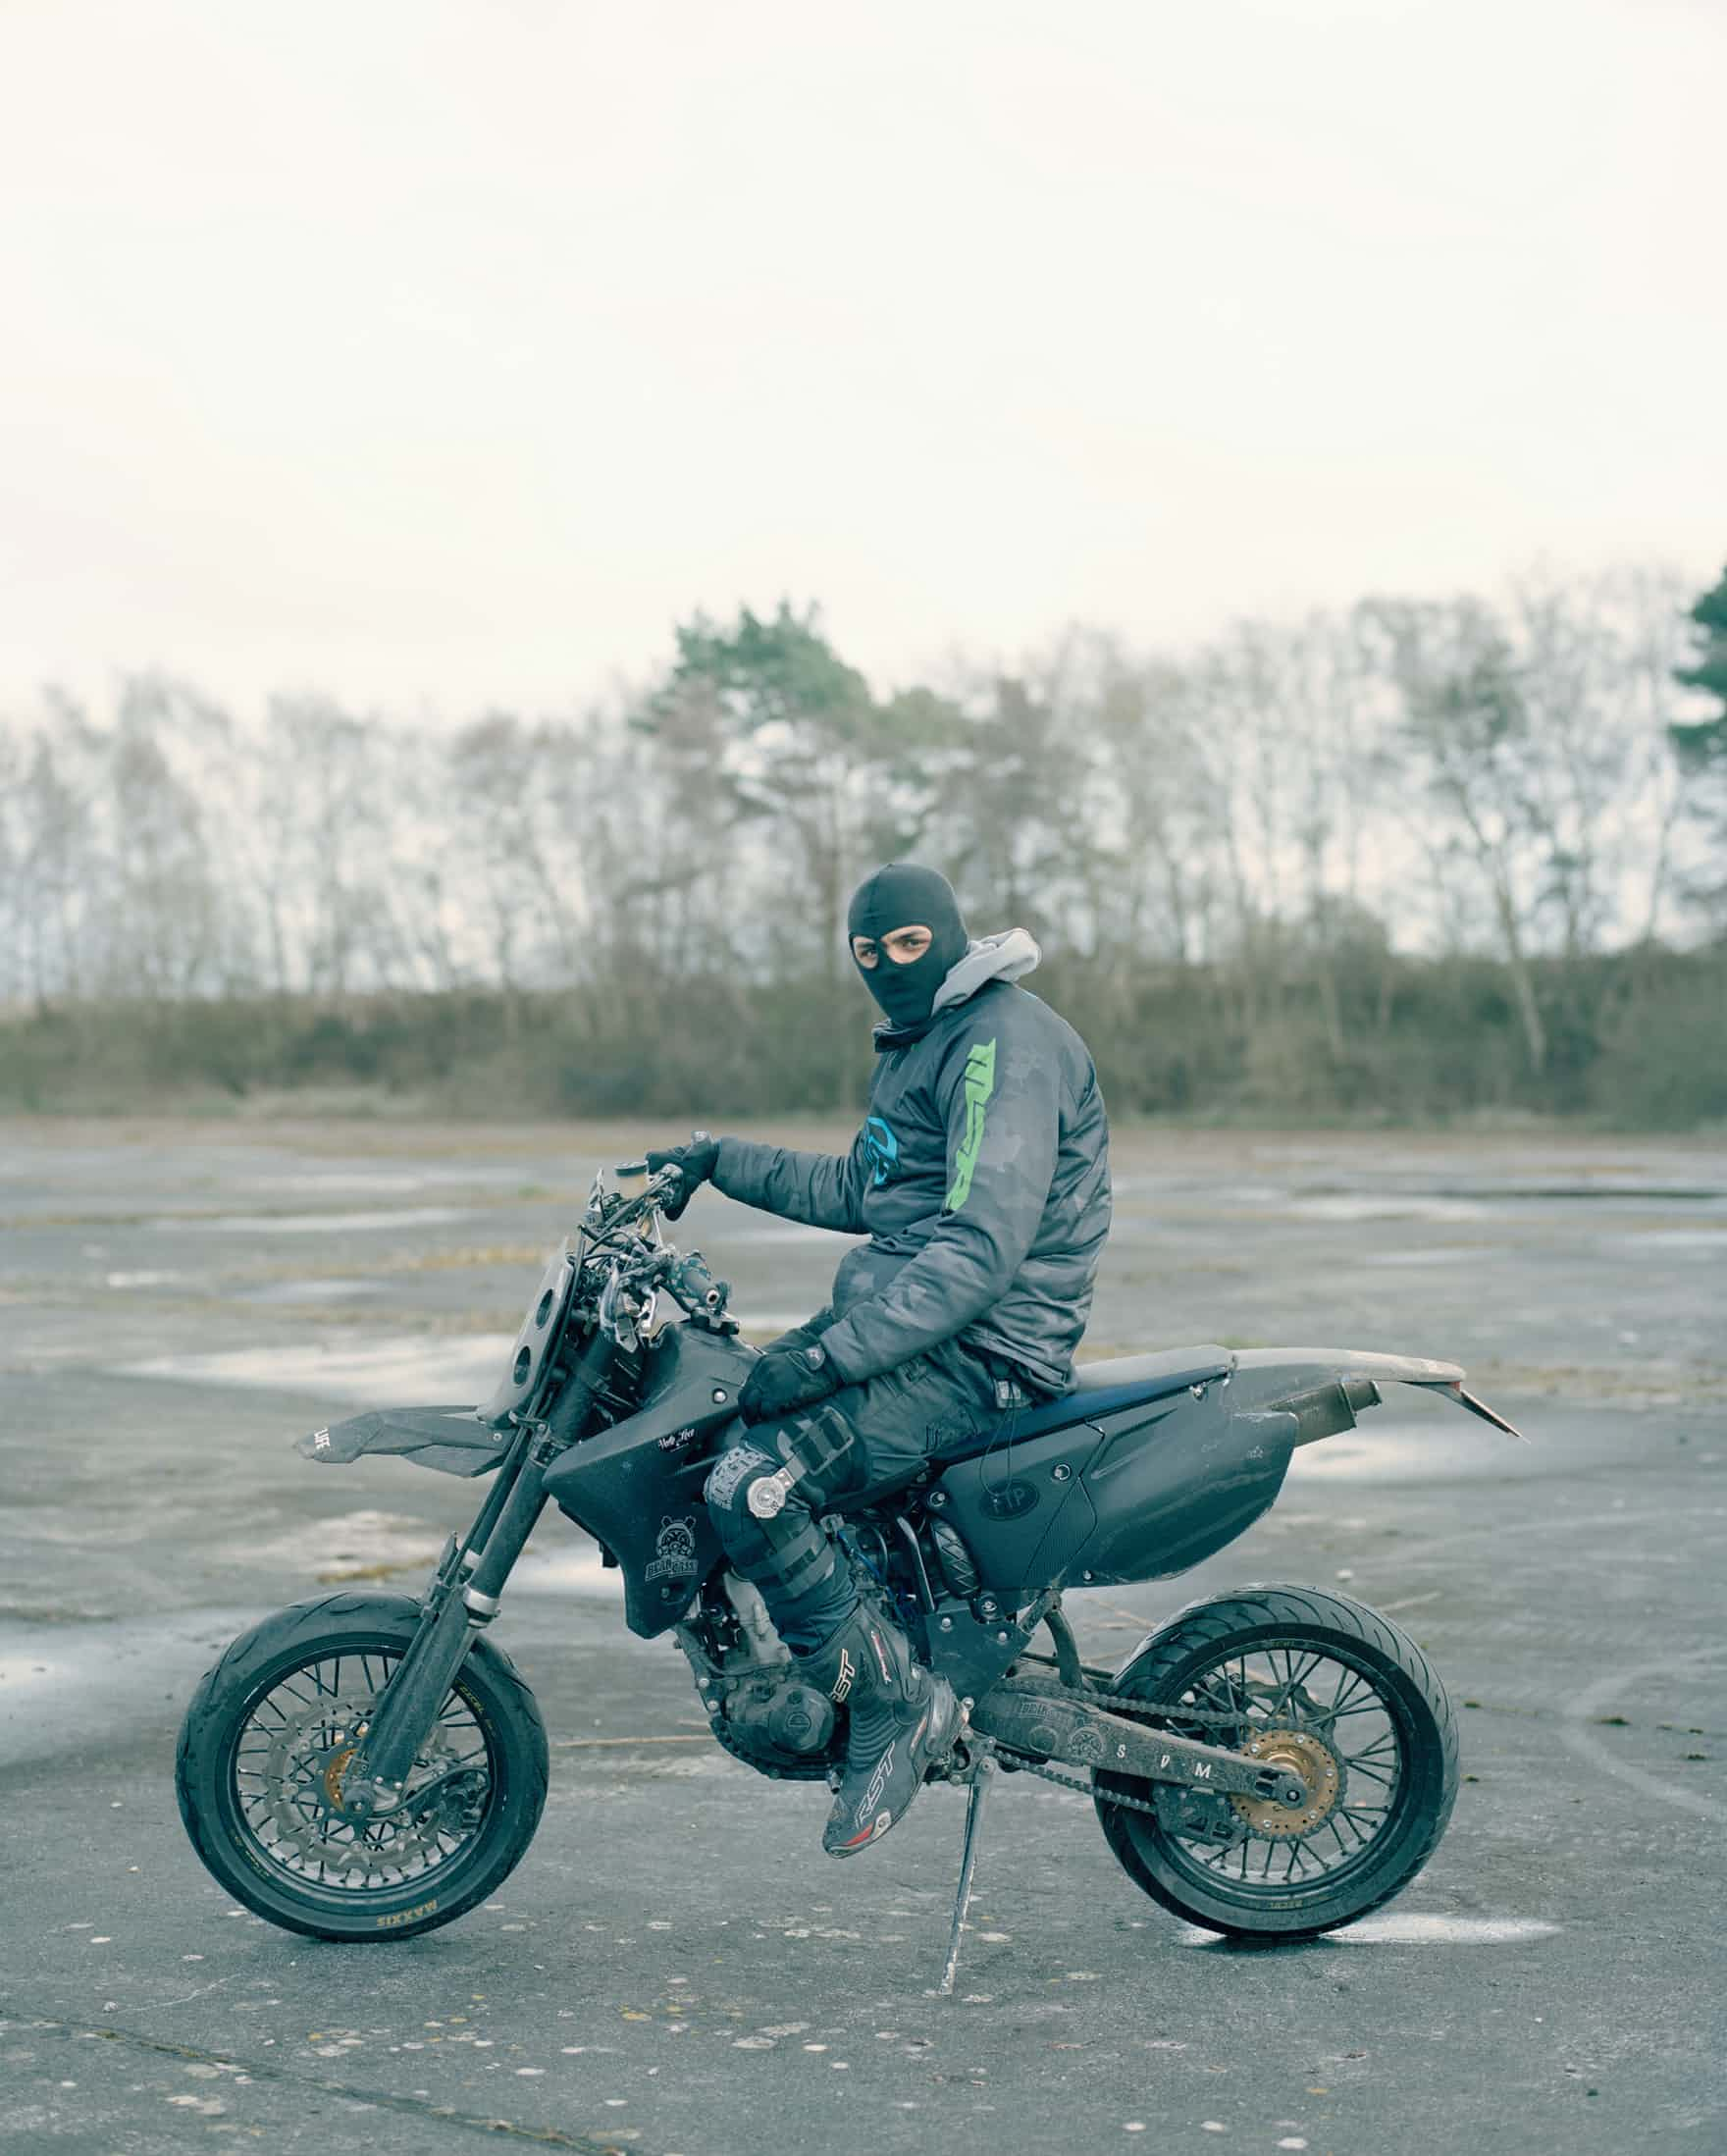 - Izzy of the Super Dupa Moto's'Riders tend to mainly meet up on a Sunday and repurpose disused airstrips and out of the way industrial estates, hidden away from unwanted attention from the public and police'